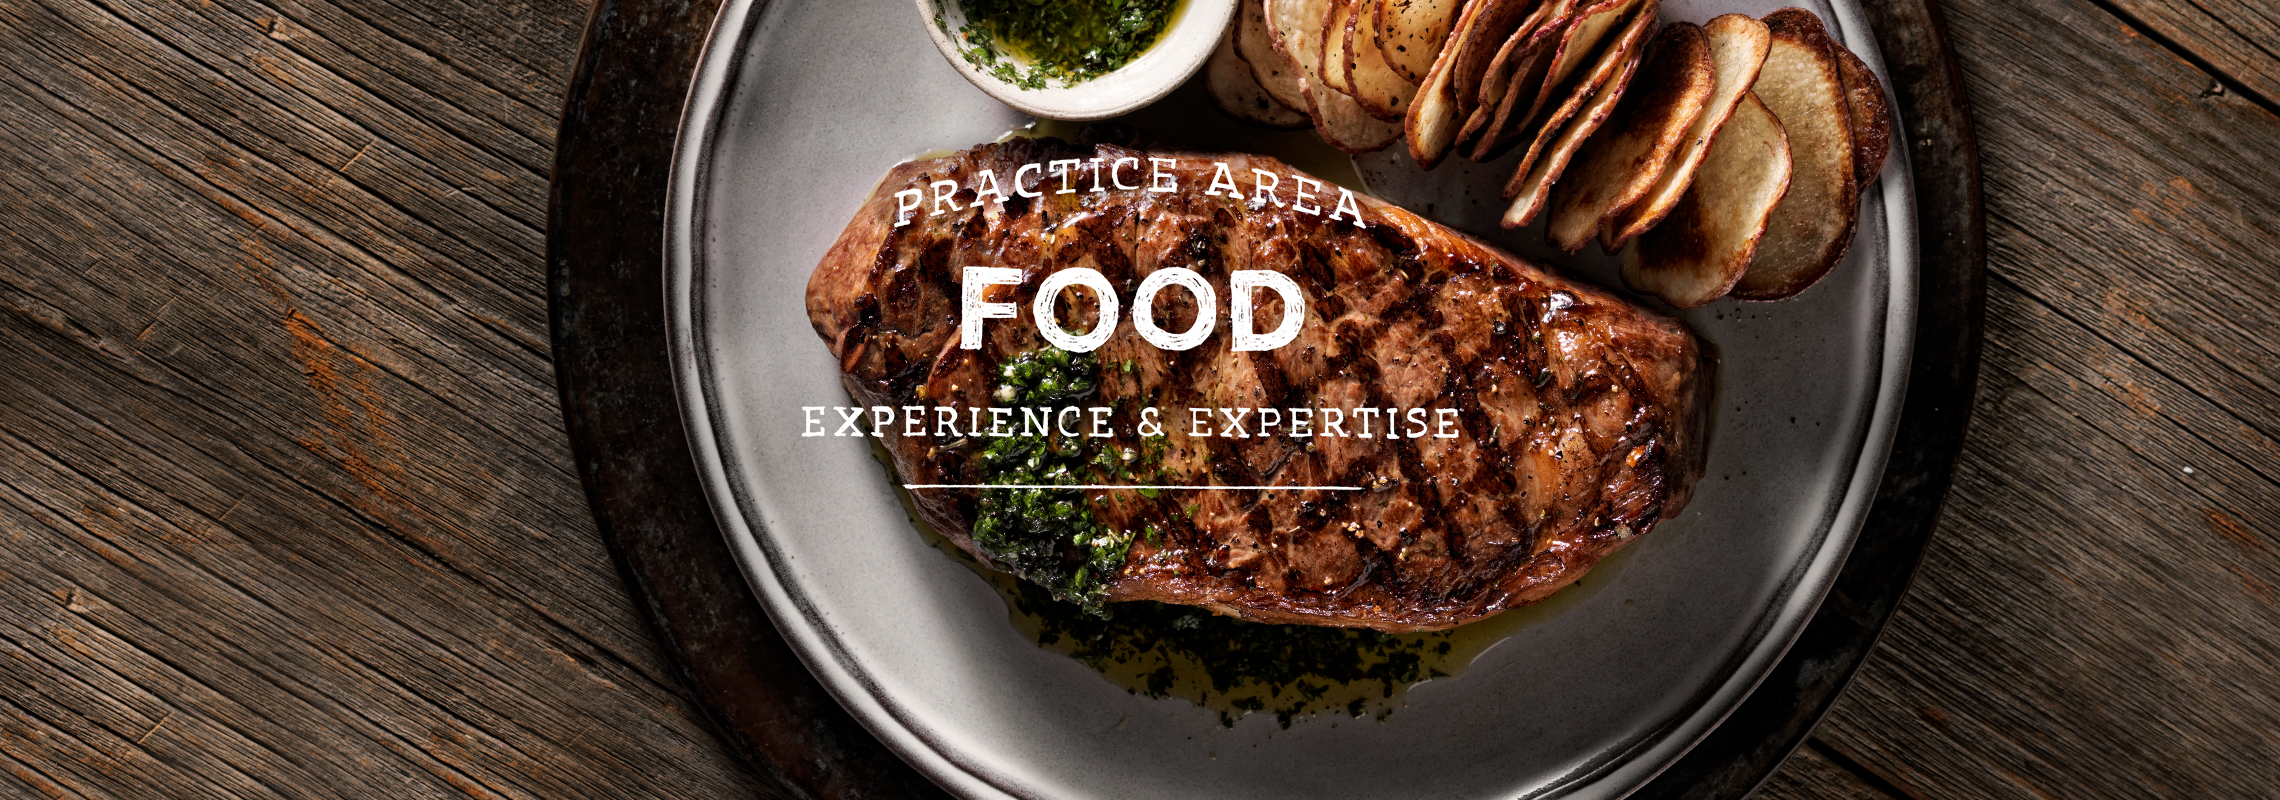 practice area food experience and expertise